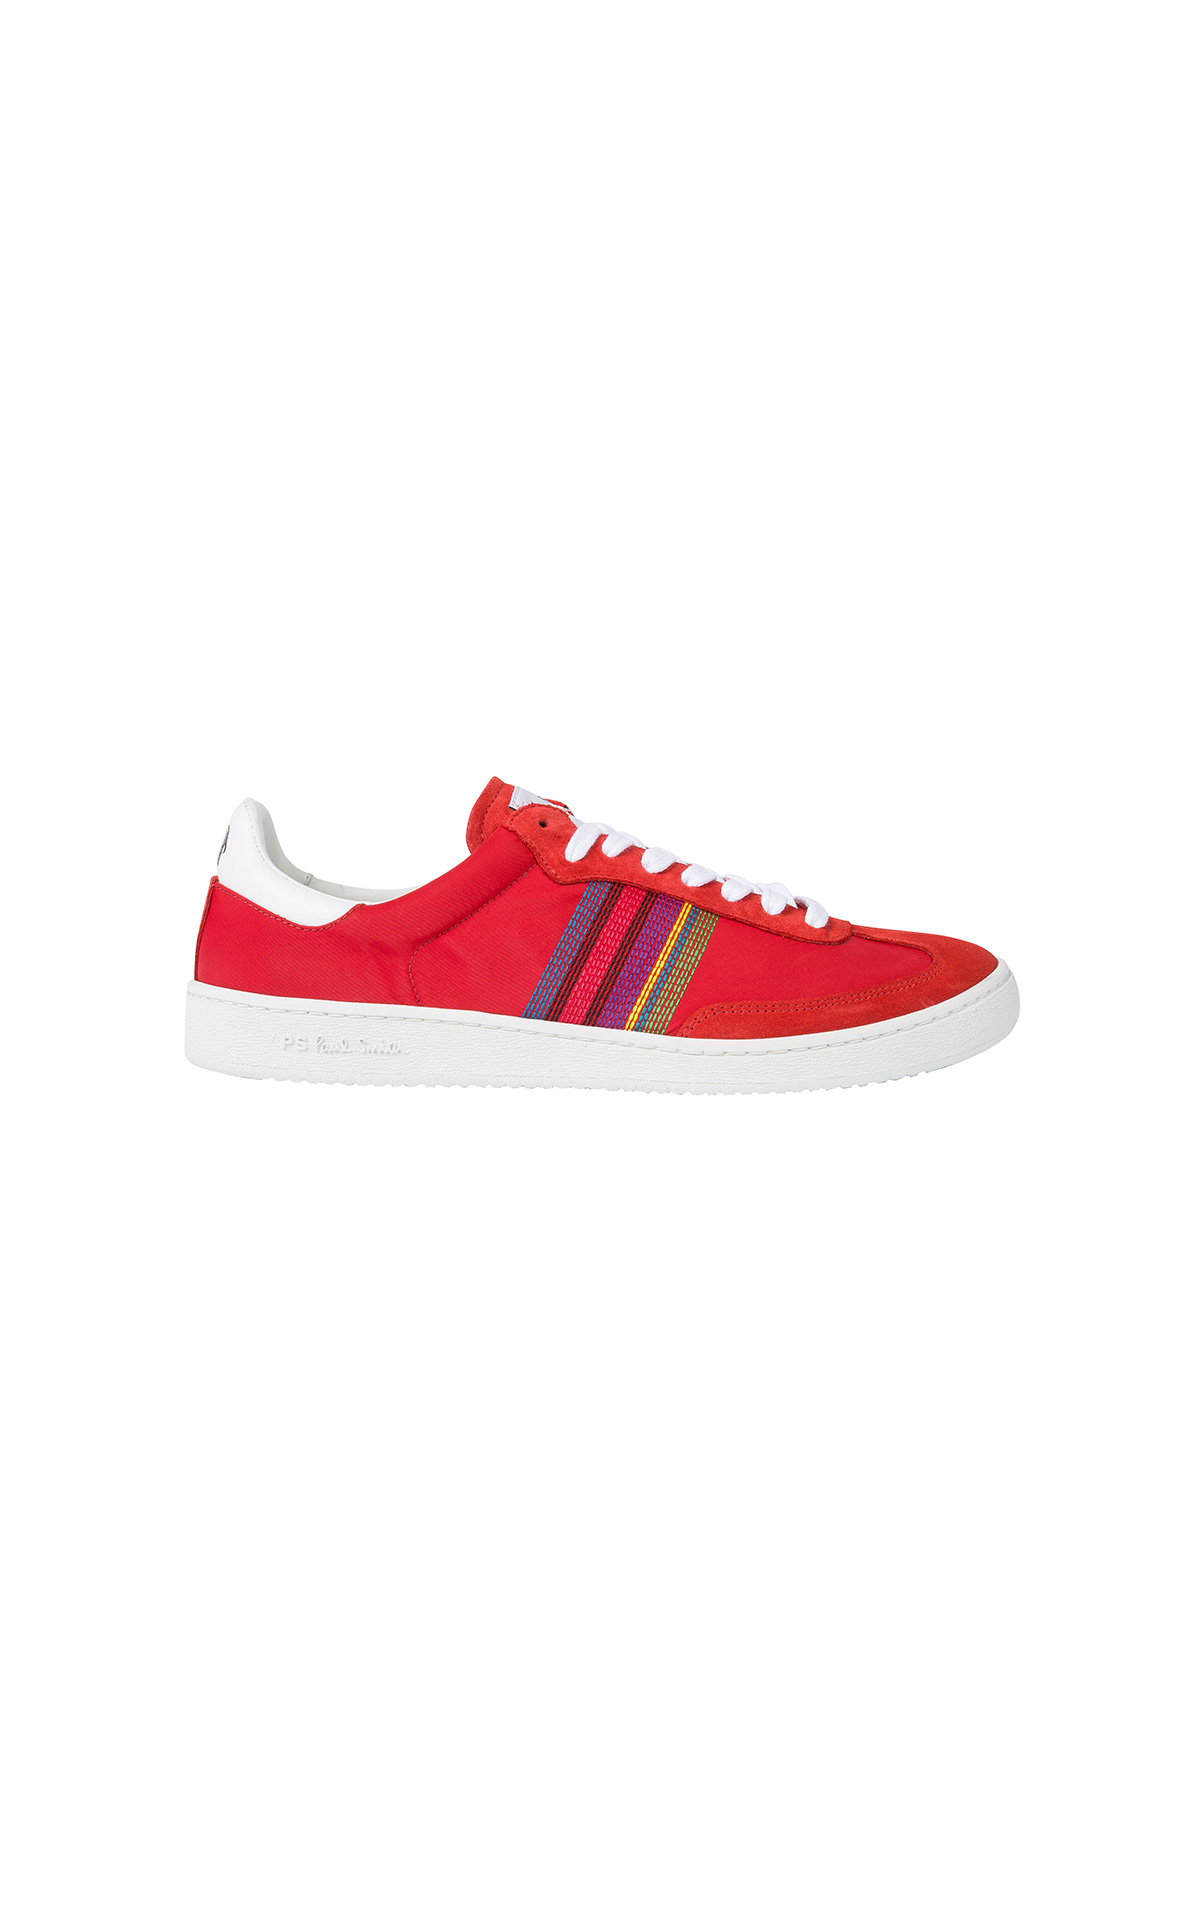 Paul Smith Men's red trainers